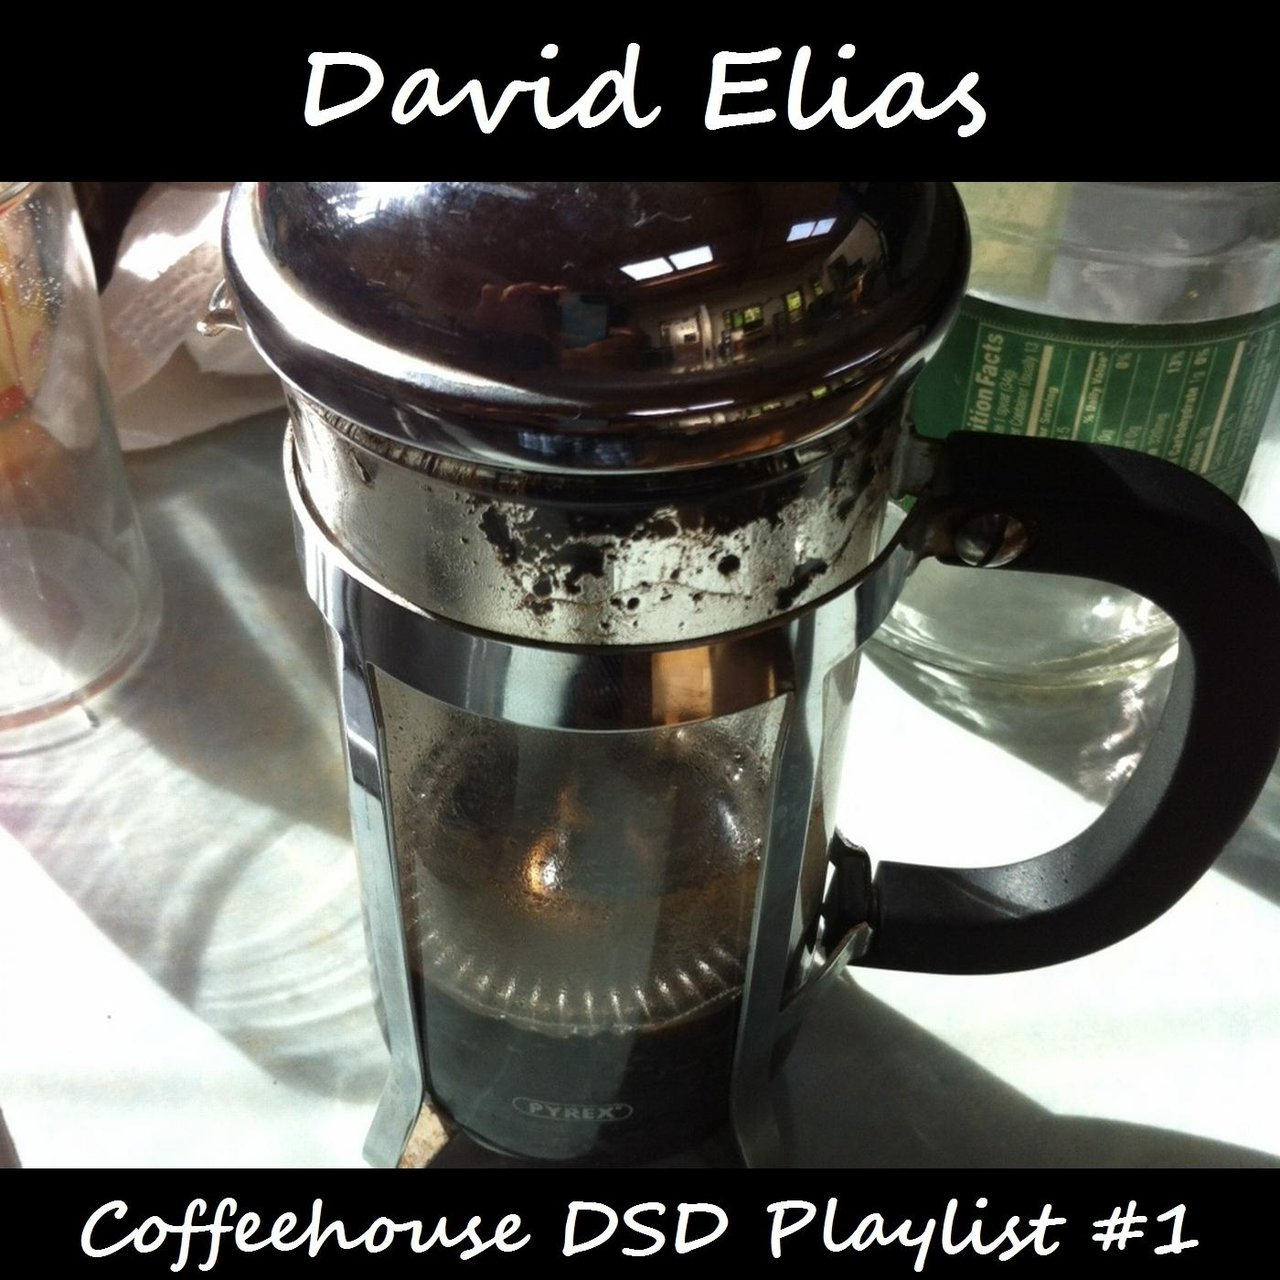 Coffeehouse DSD Playlist No. 1